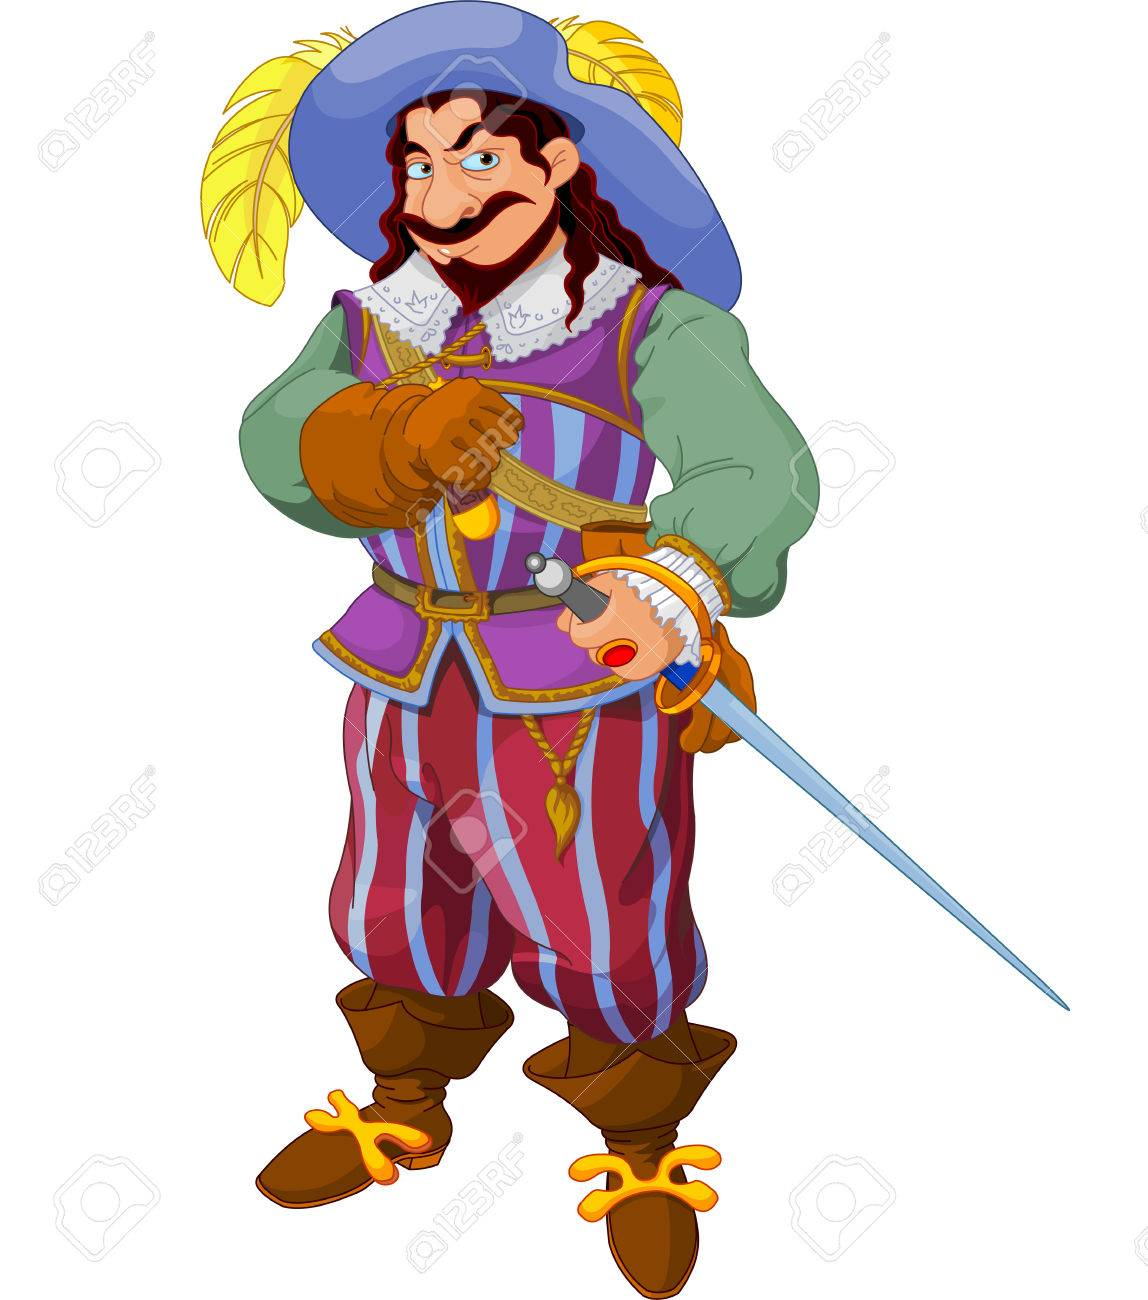 Man with a period costume and a sword posing. Stock Vector - 29083727